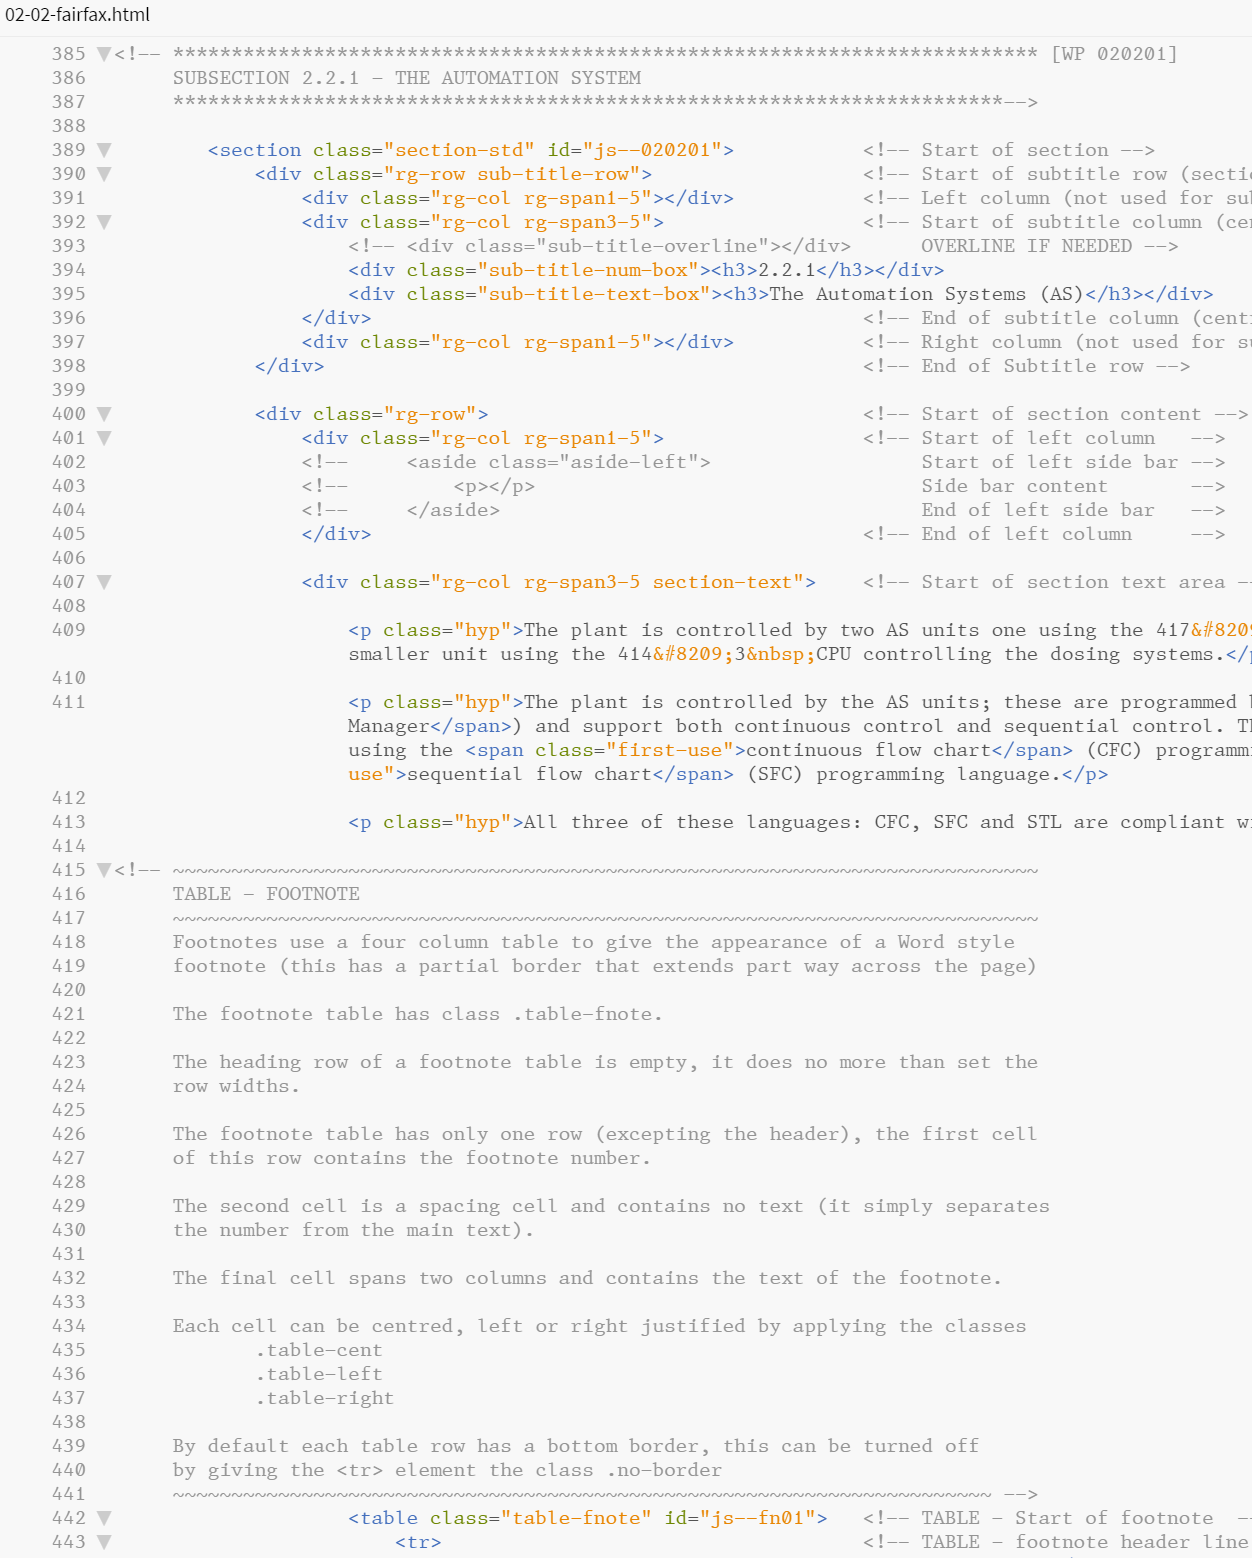 Figure 6.23 - Comments from a subsequent section of the HTML file